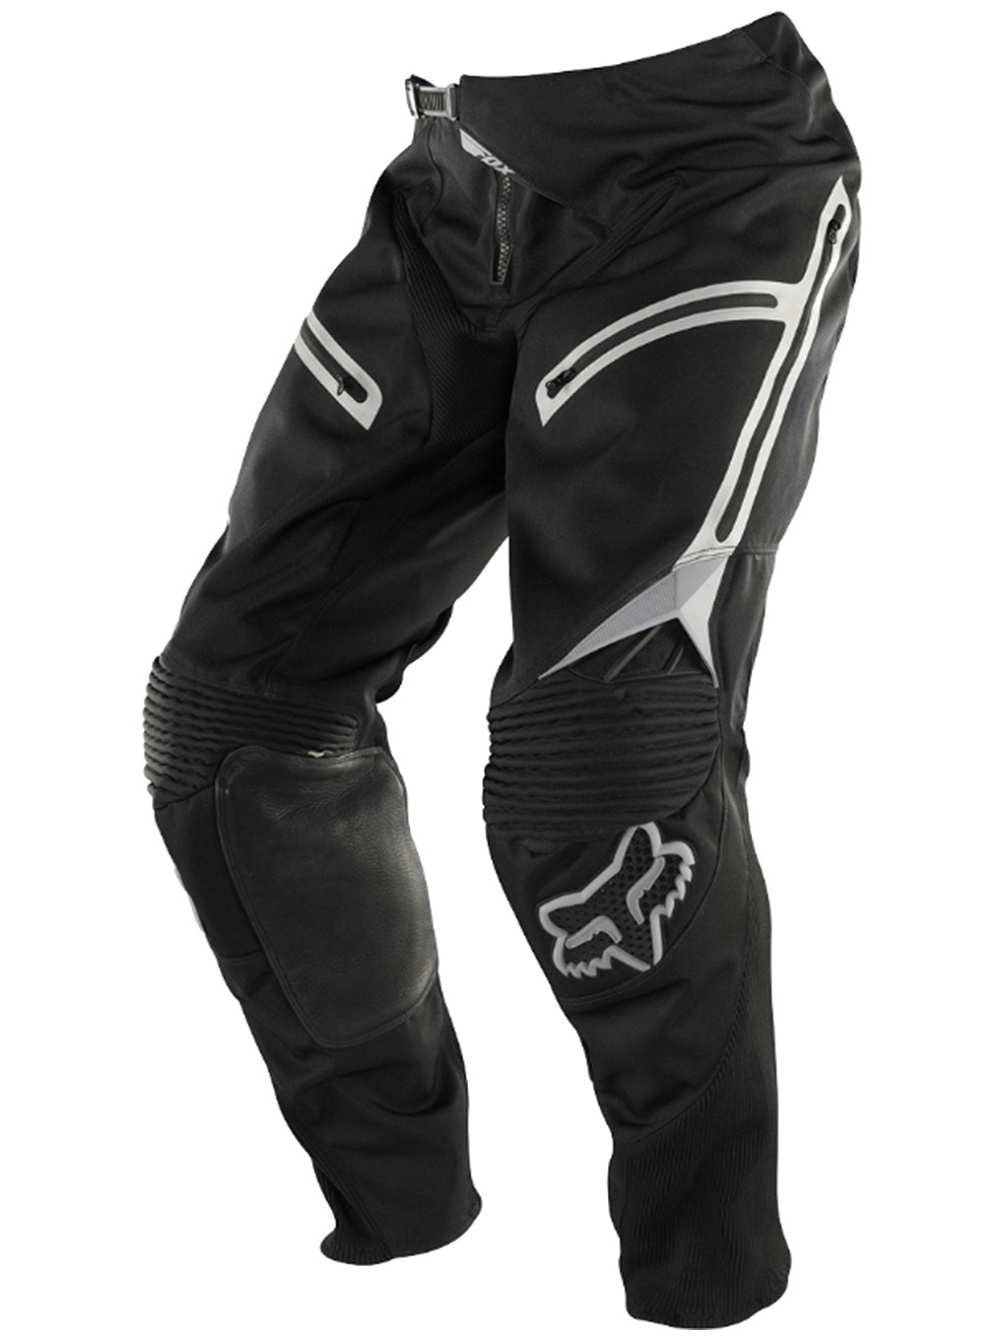 Fox Racing Legion Men's Off-Road Motorcycle Pants - Black/Grey / 38